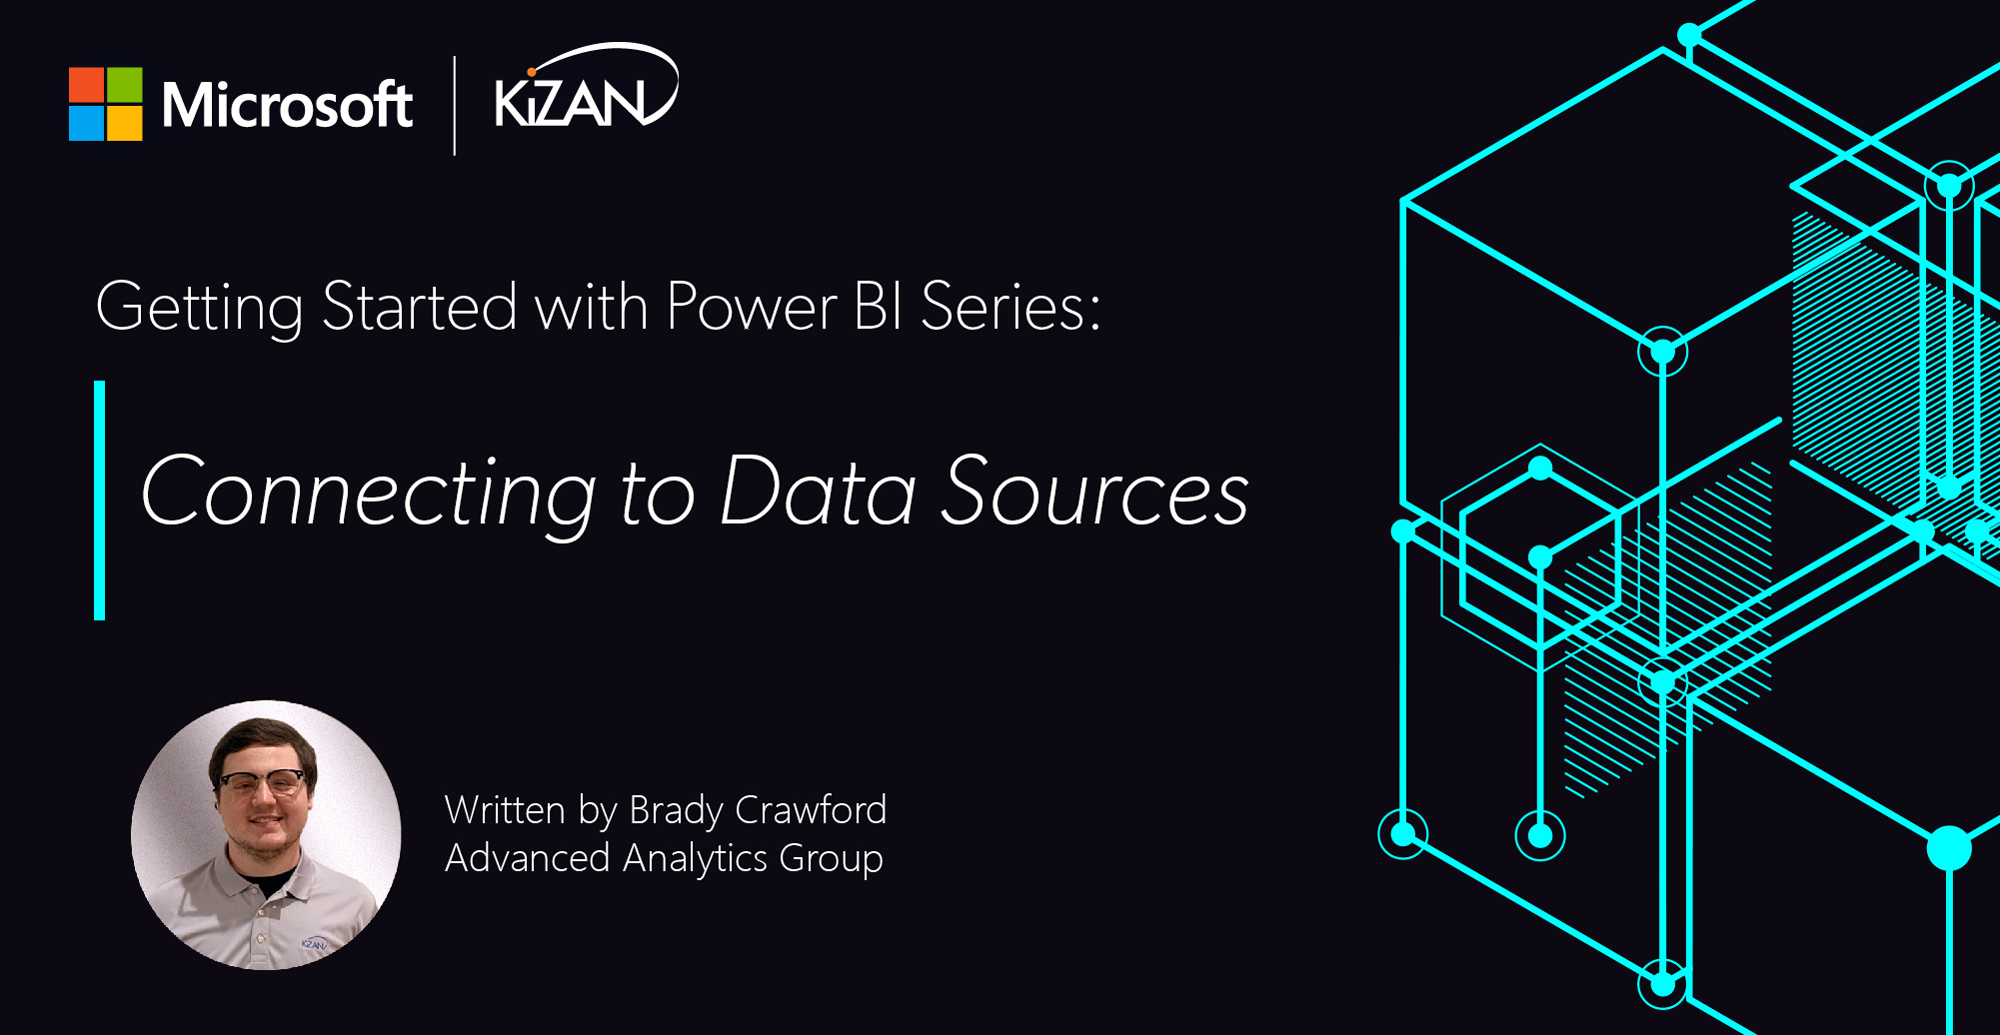 Getting Started with Power BI Series: Connecting to Data Sources.